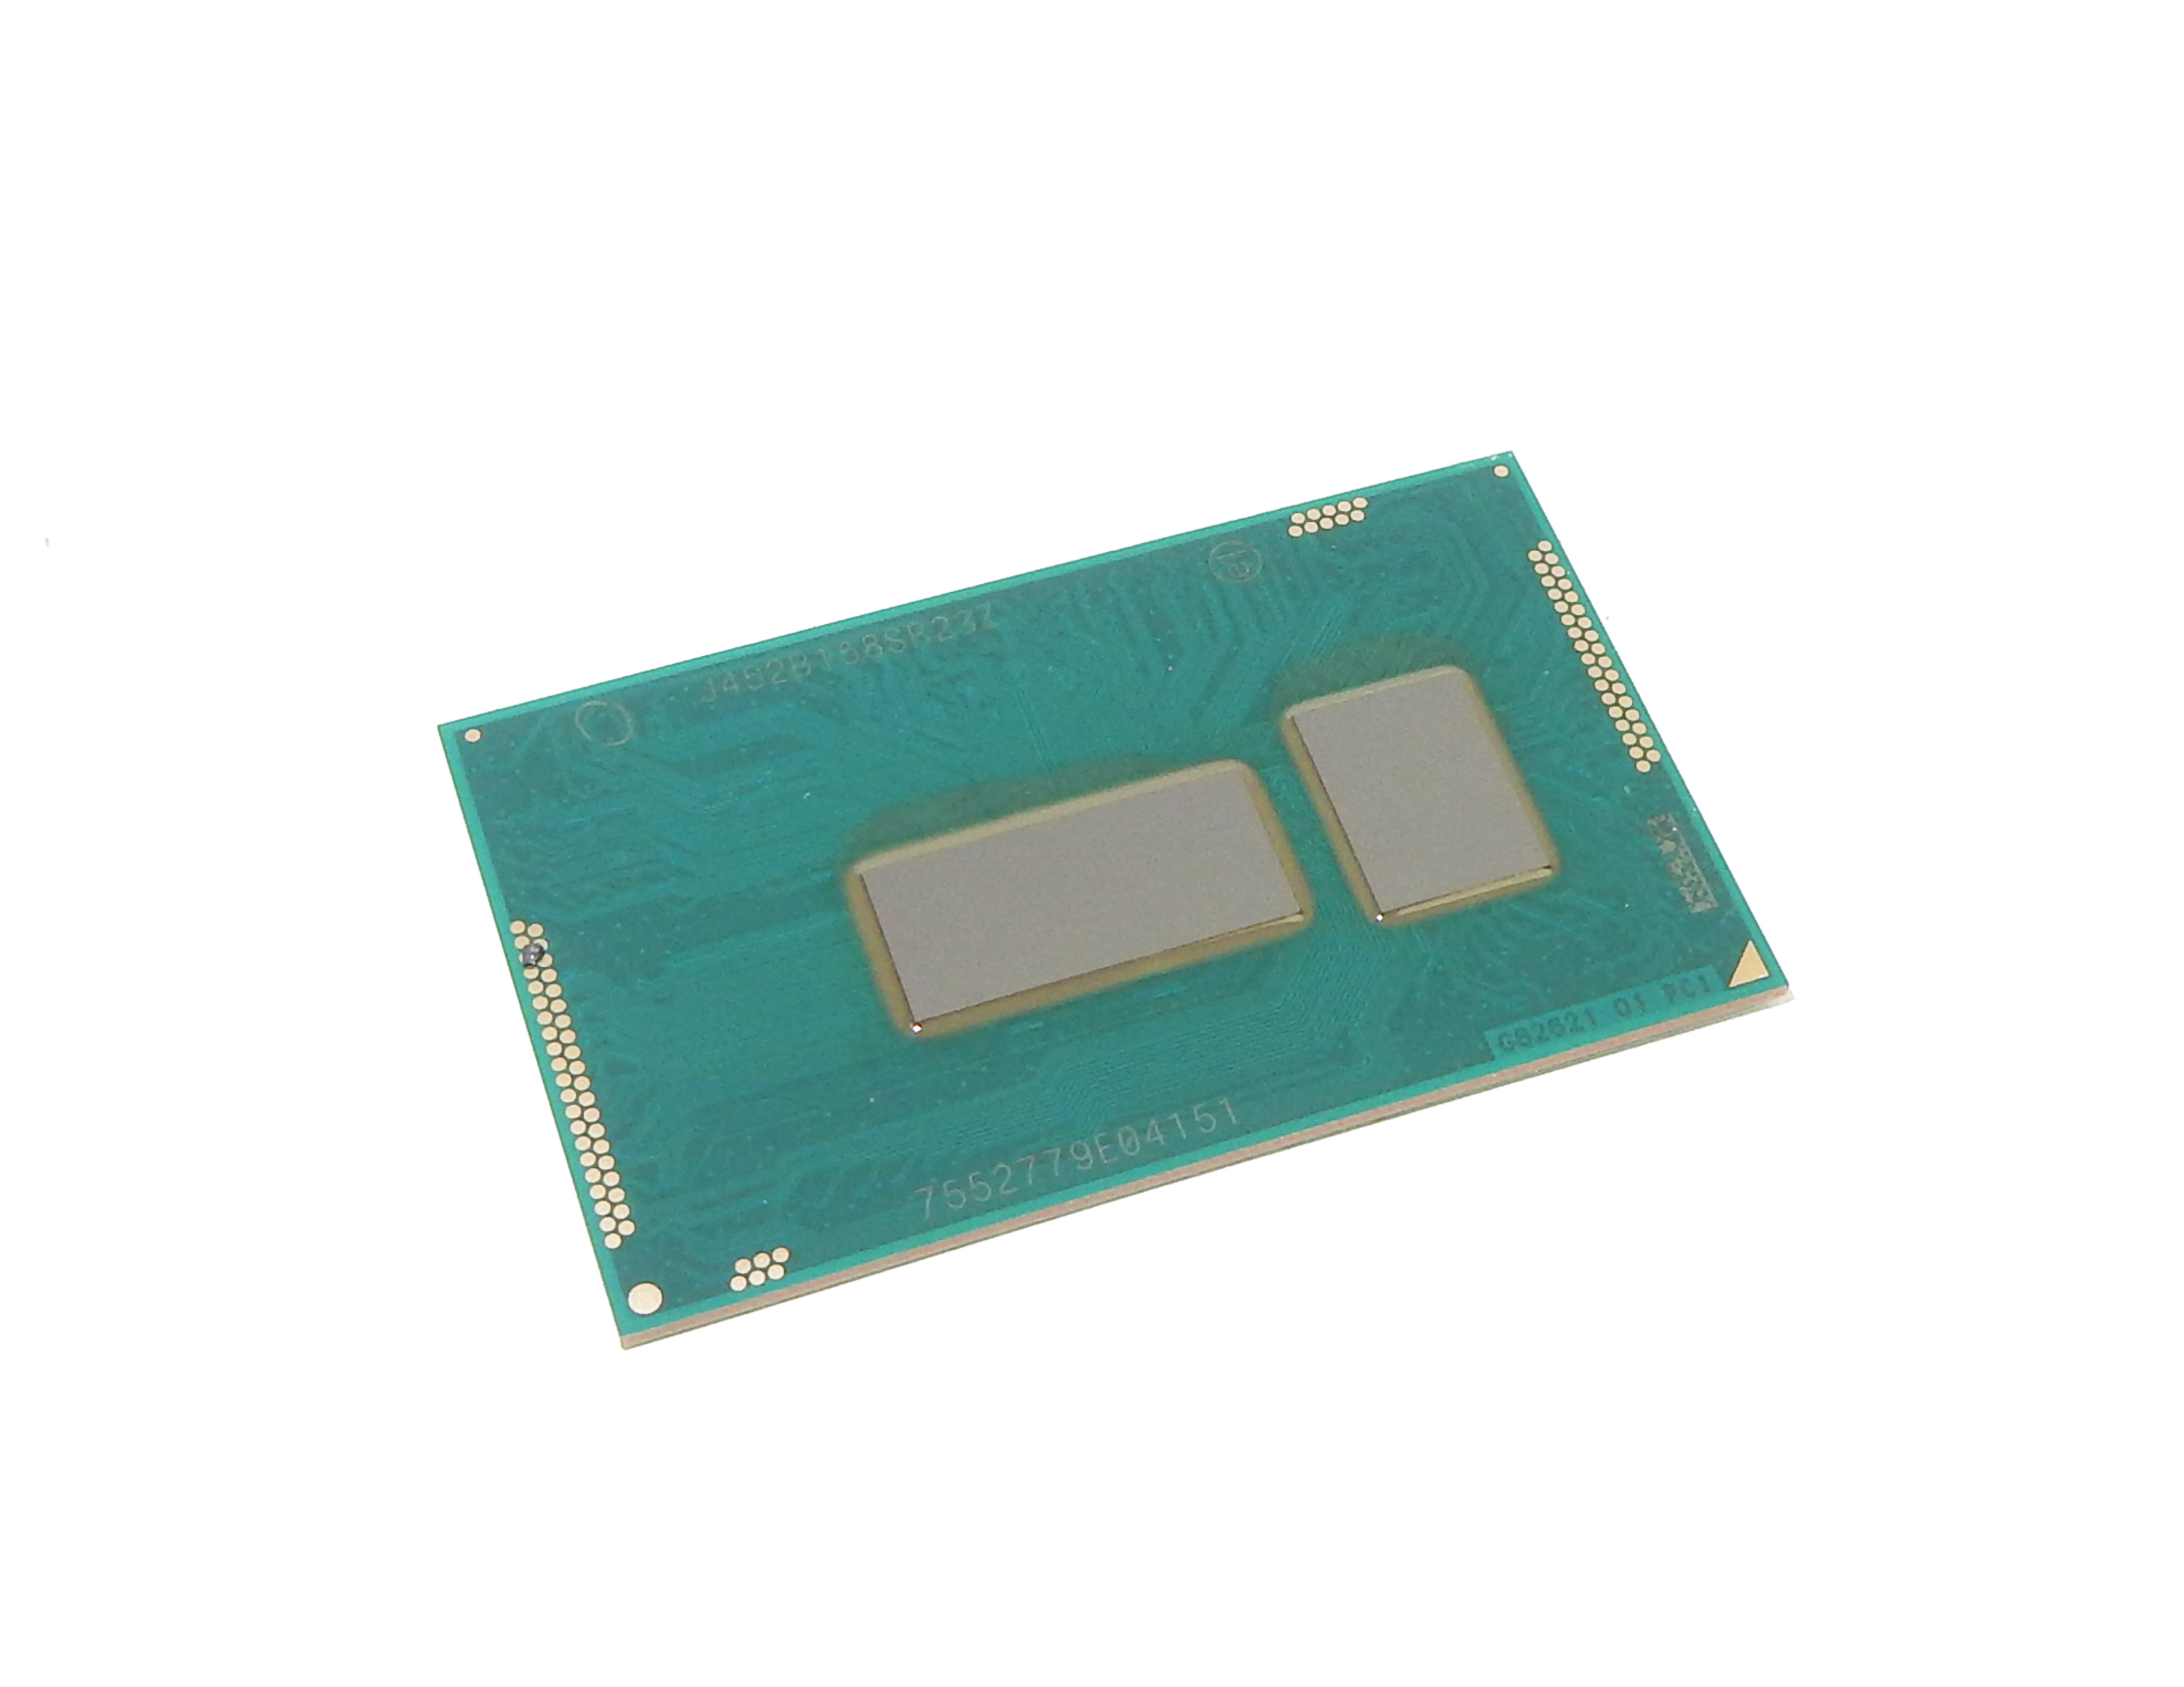 New Intel SR23Z Core i3-5010U BGA CPU